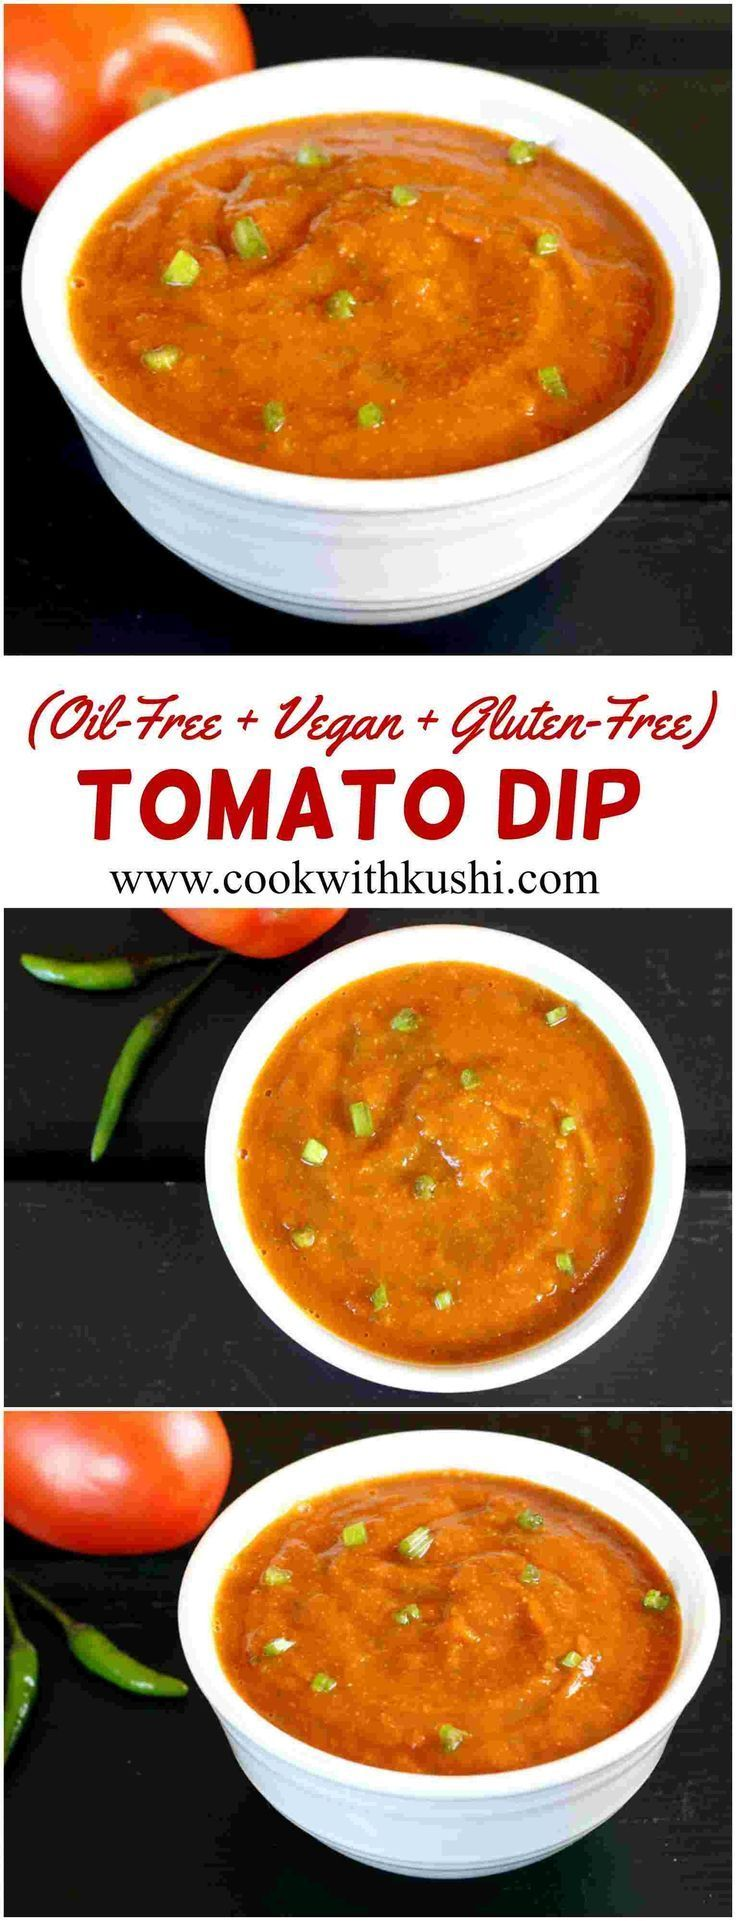 Tomato Chutney or dip is a oil-free, tangy and spicy, flavorful dip prepared in less than 15 minutes. This recipe is vegan and gluten free. #vegan #glutenfree #oilfree #dip #chutney #recipe #tomato #appetizer #snack #lunch #dinner #holiday #spicy #feedfeed #buzzfeedfood #rawvegandinner #rawveganrecipes